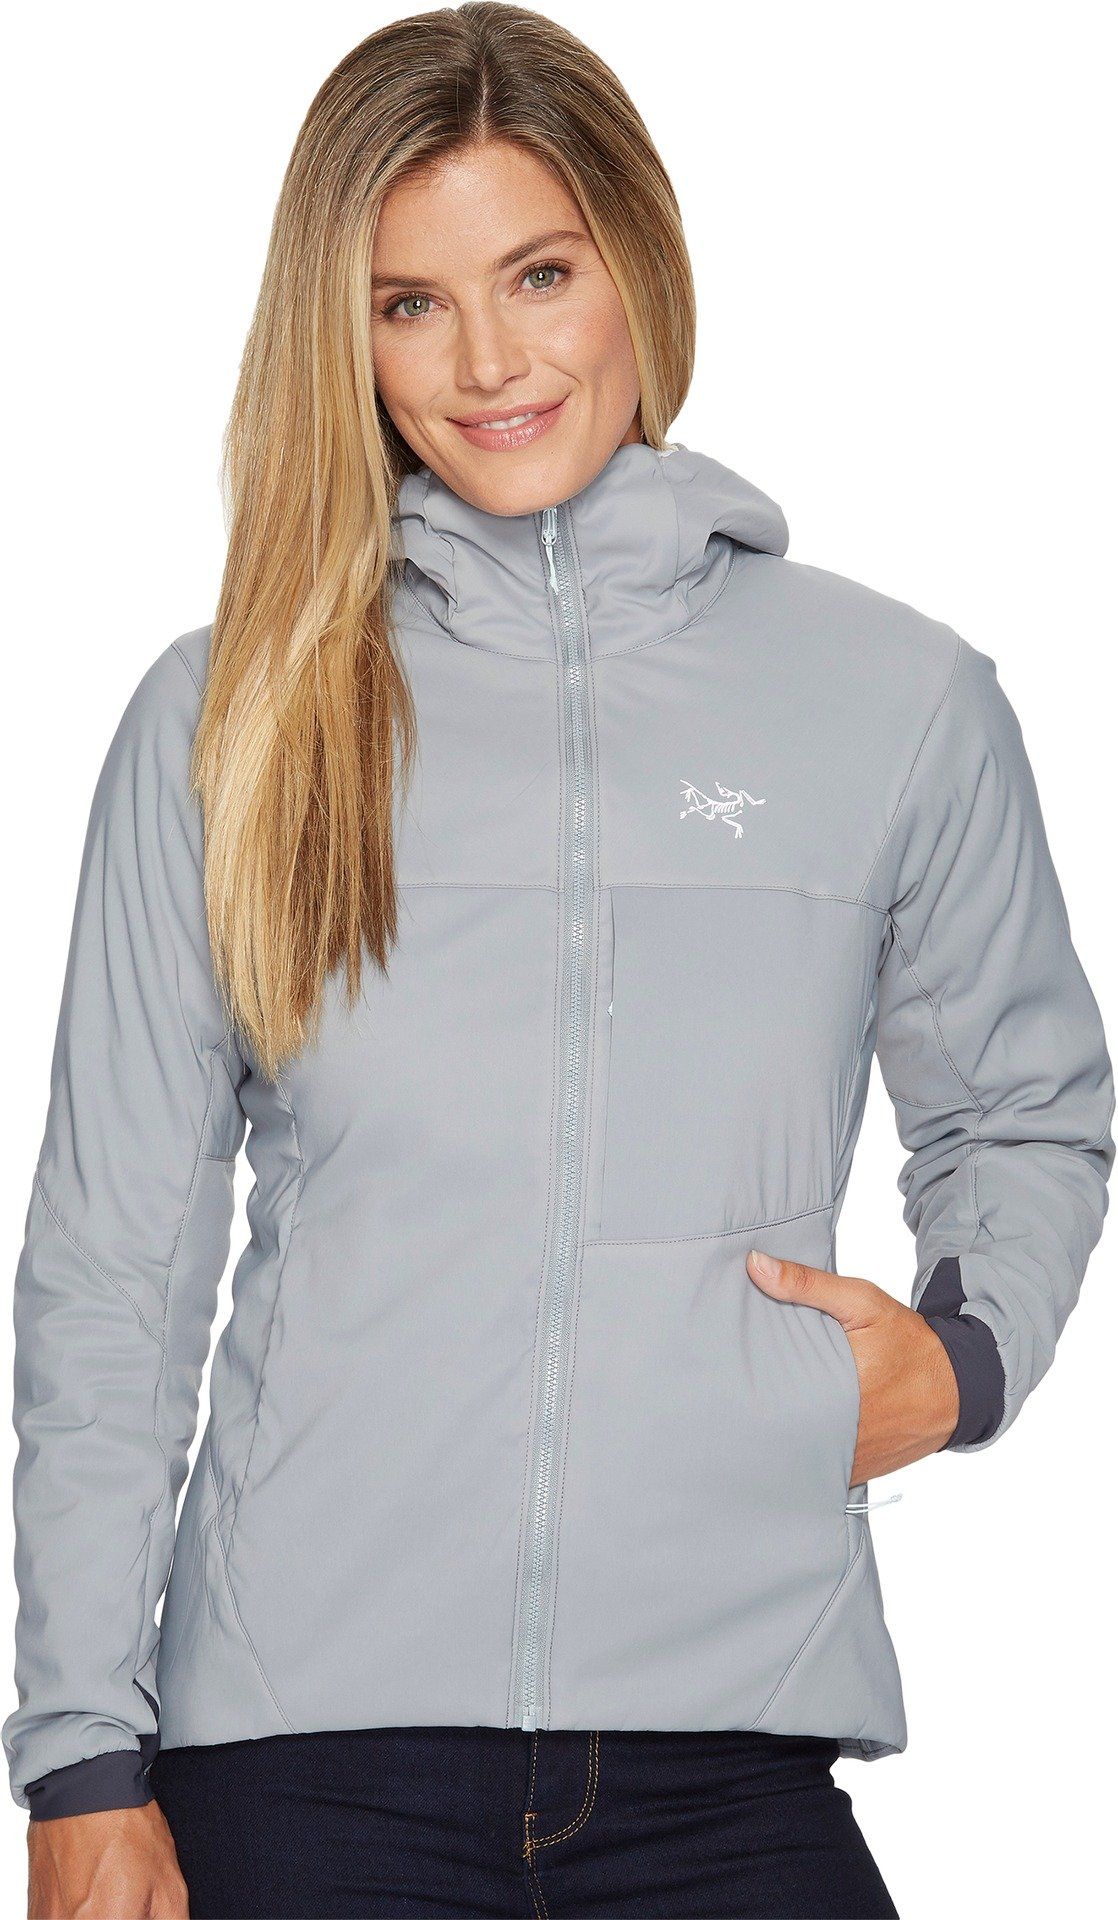 Arc'teryx Women's Proton LT Hoodie Smoke Sweatshirt by Arc'teryx